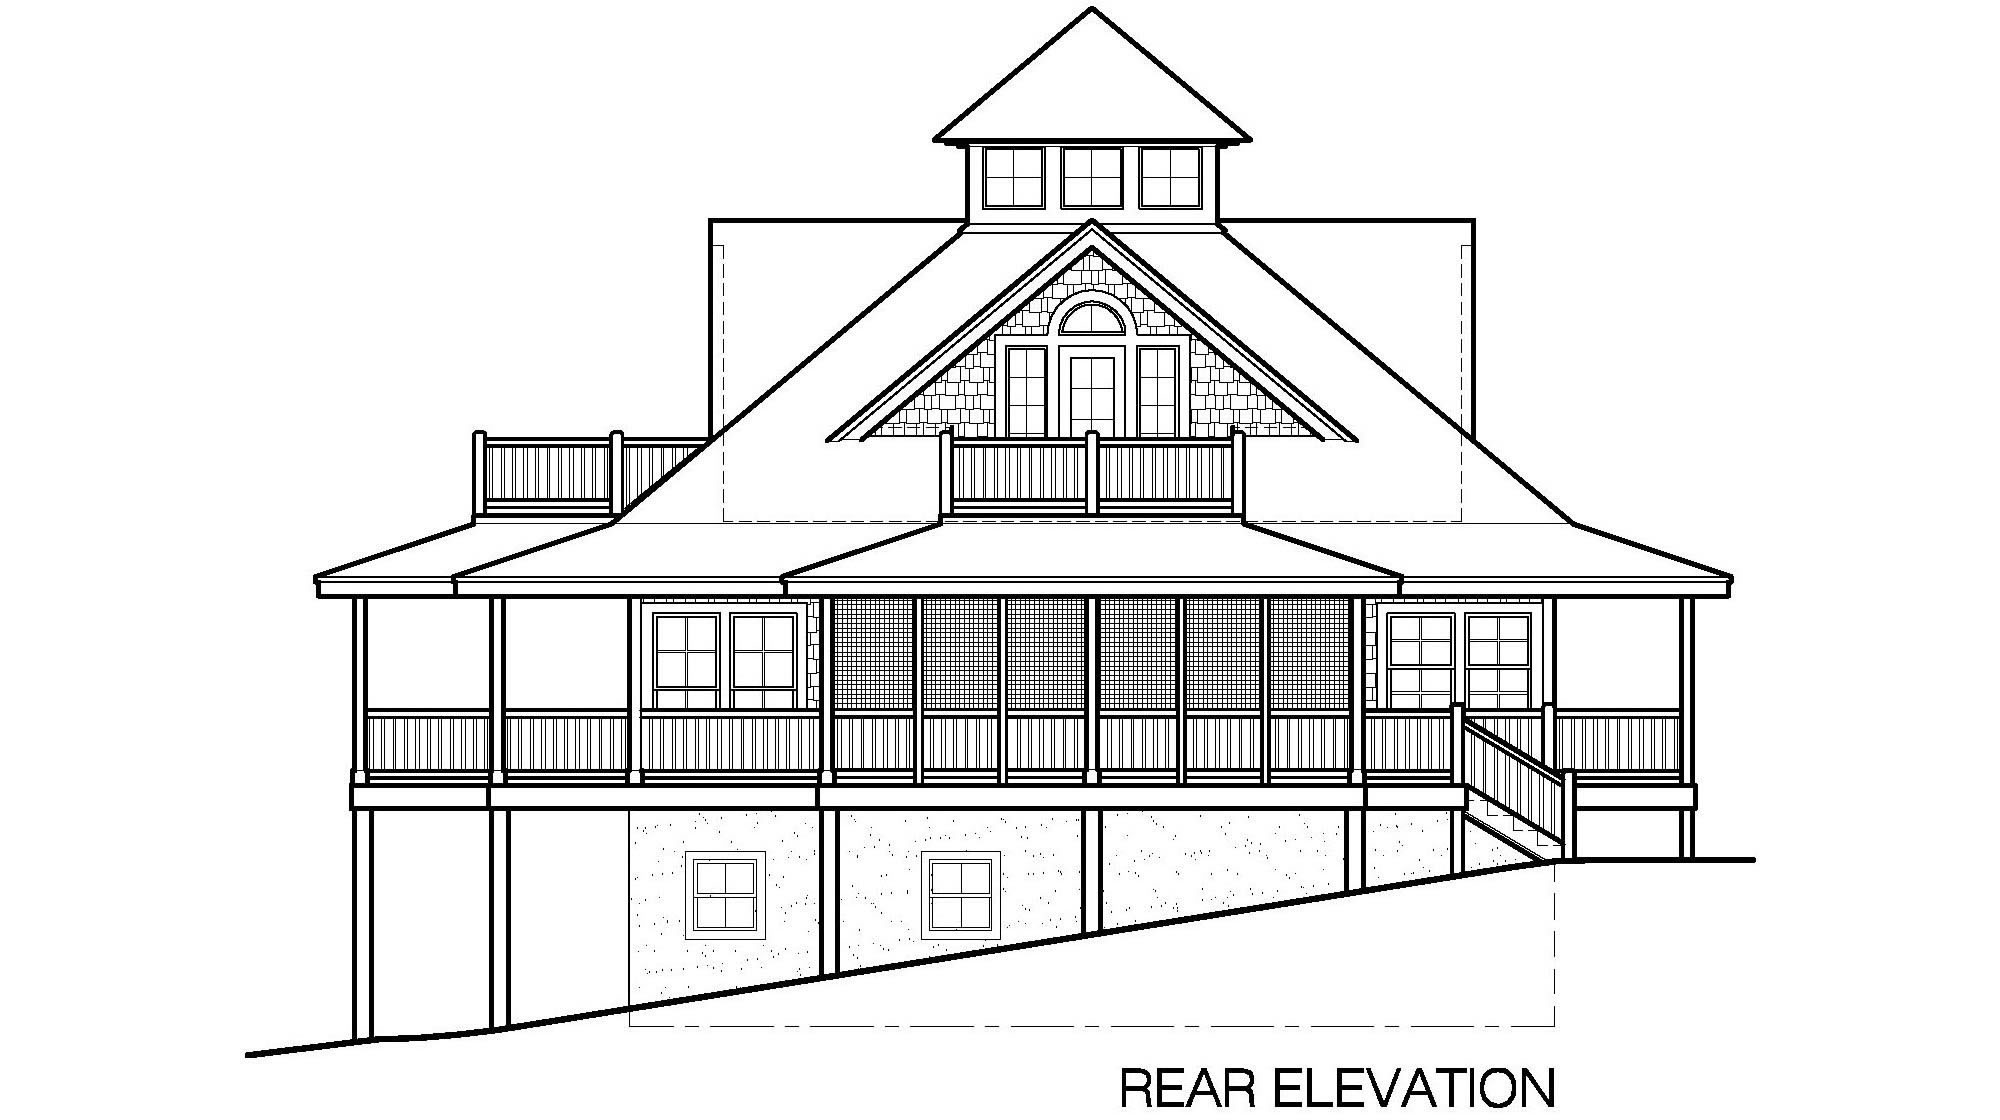 Island cottage basement foundation 2058 sf plus 1369 sf for Island basement house plans